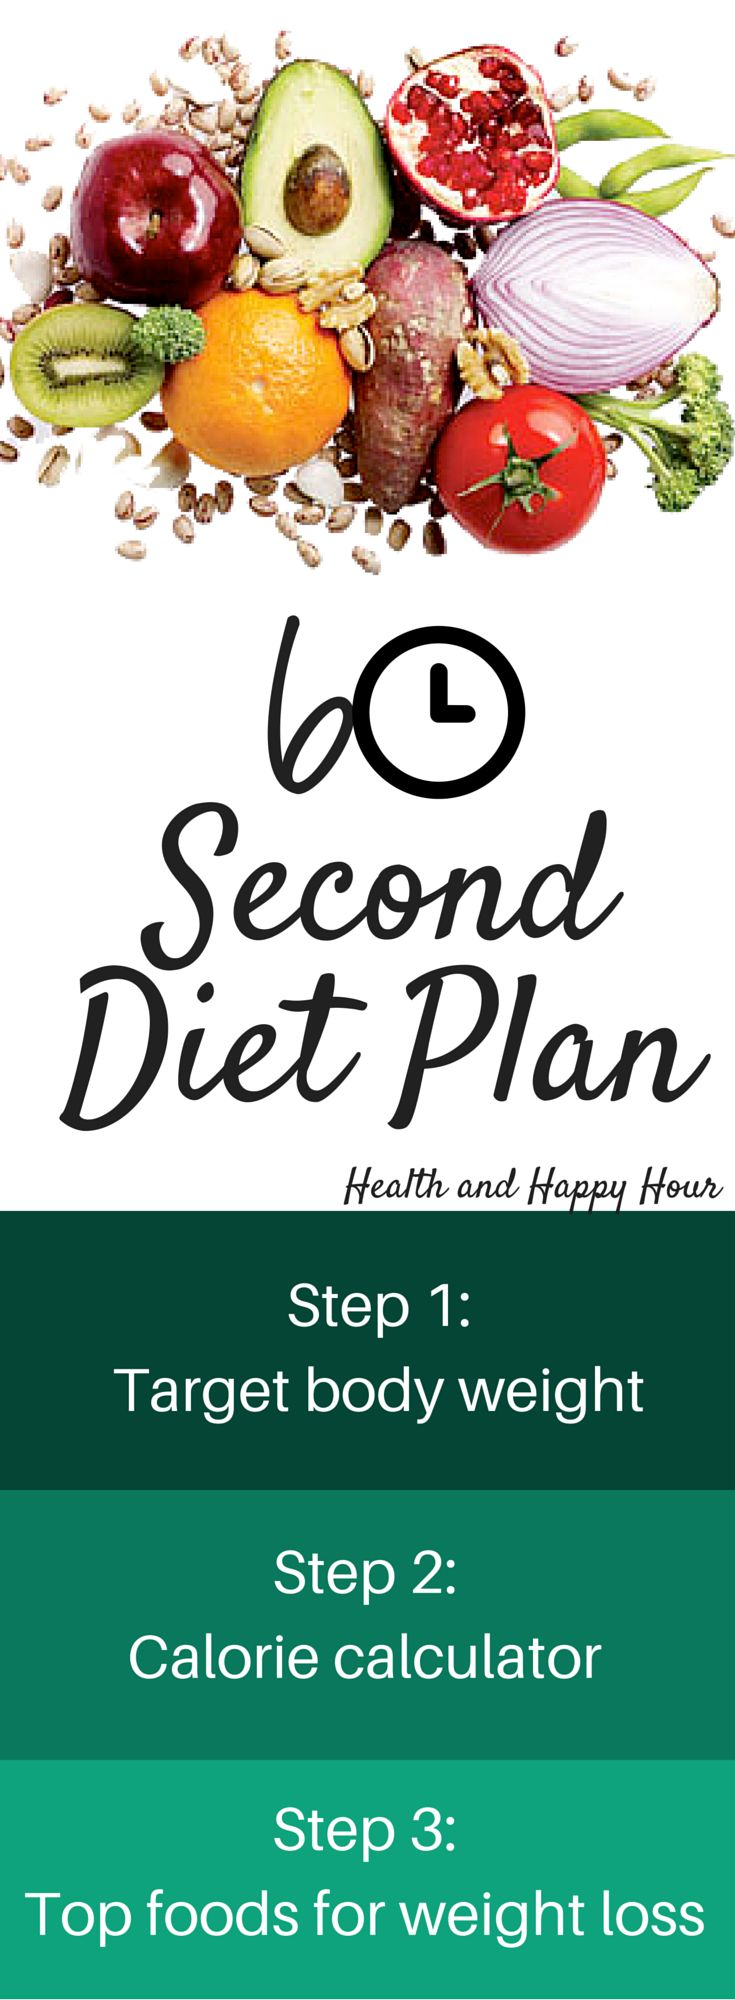 60 step diet plan for women to help you lose weight quick. This clean eating diet plan will help you maximize your weightloss by counting your calories and eating healthy foods while not making major sacrifices. http://healthandhappyhour.com/60-second-diet-plan-for-fast-weight-loss-for-women/